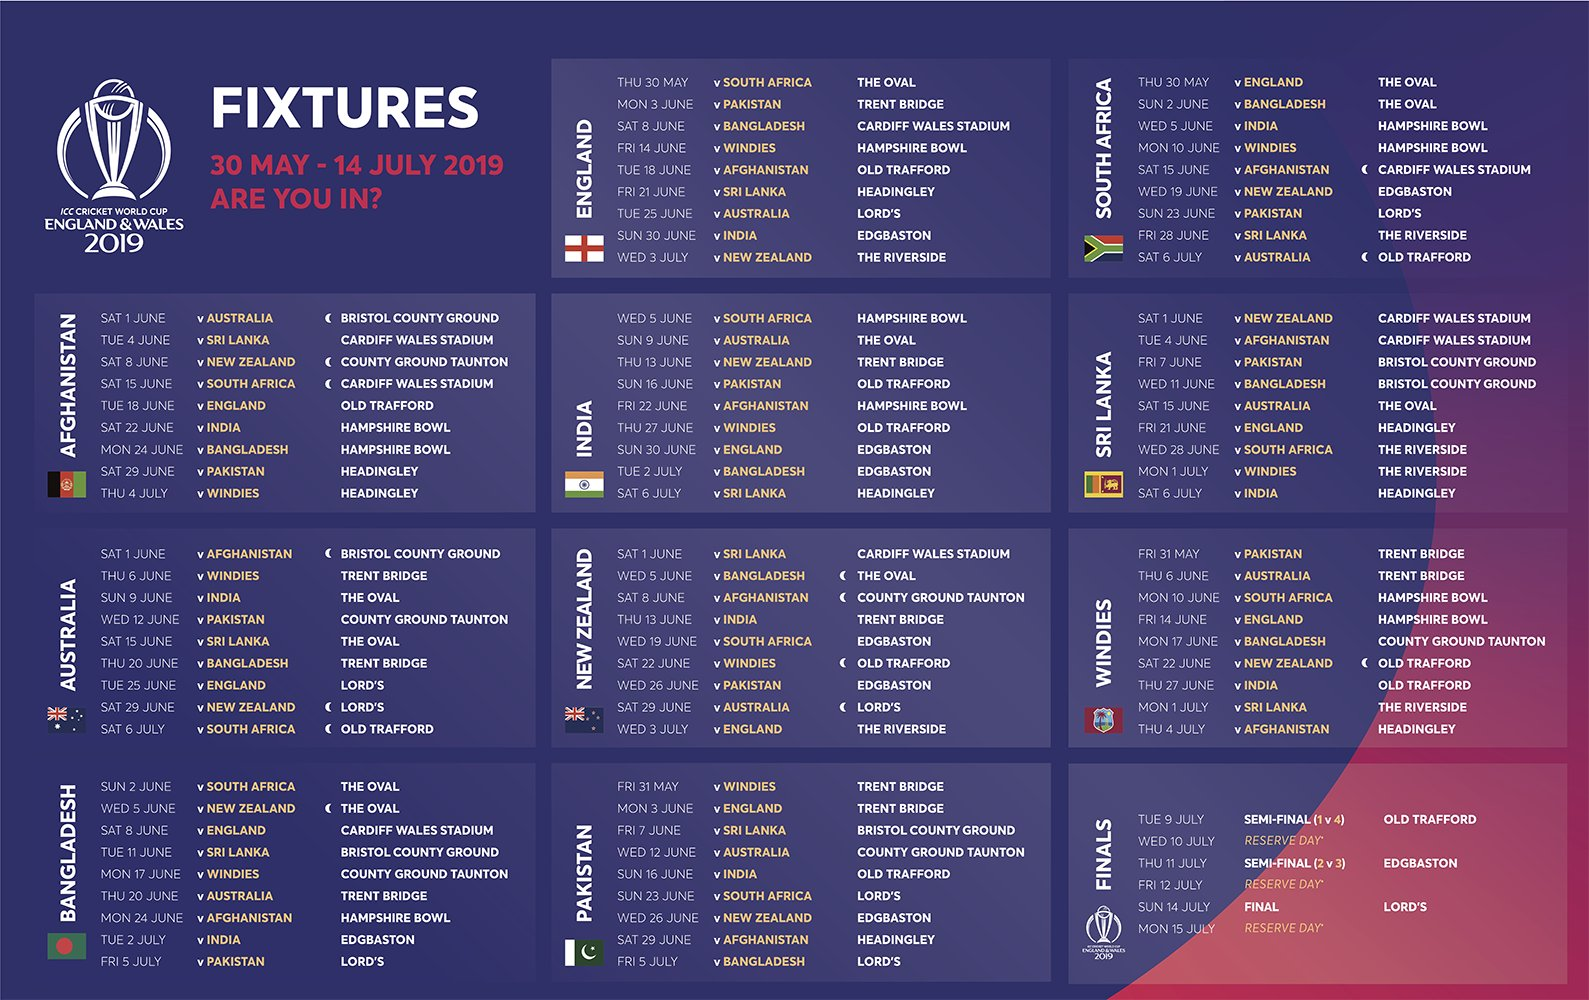 icc on twitter   u0026quot you u0026 39 ve seen the  cwc19 fixtures  now make sure you get your tickets  the